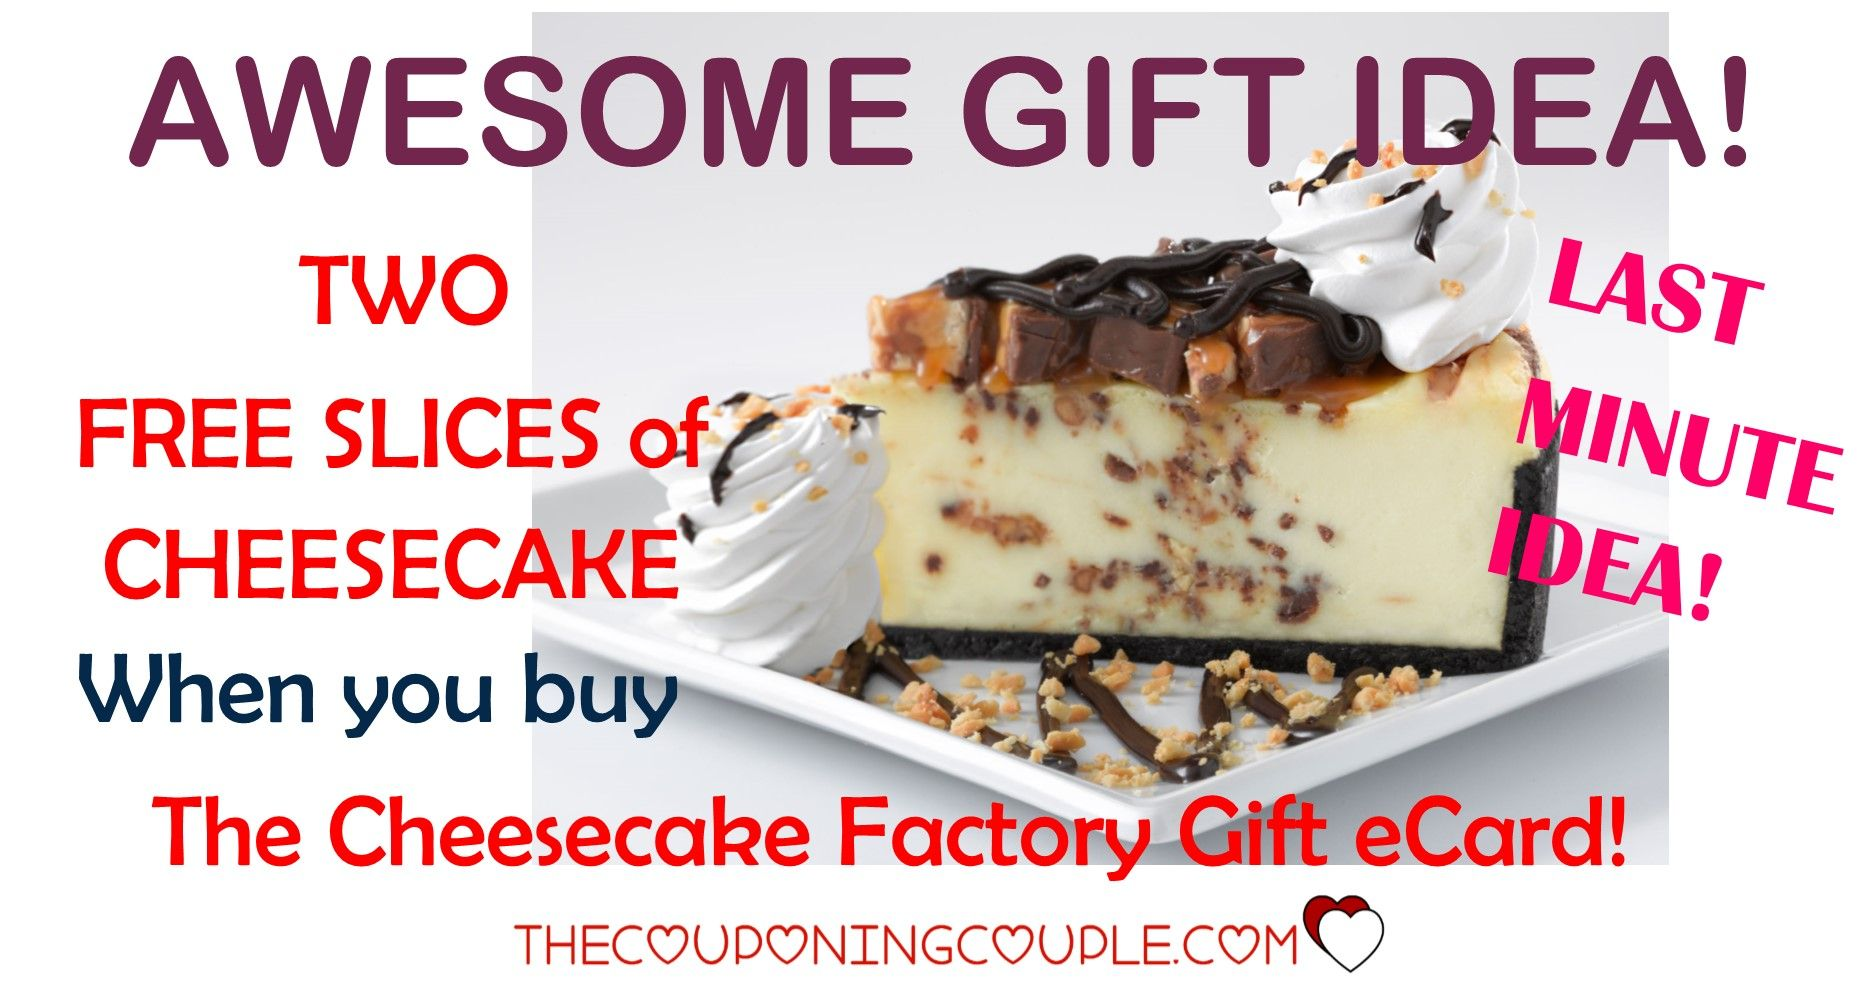 TWO FREE Cheesecake Slices from Cheesecake Factory with Gift Card